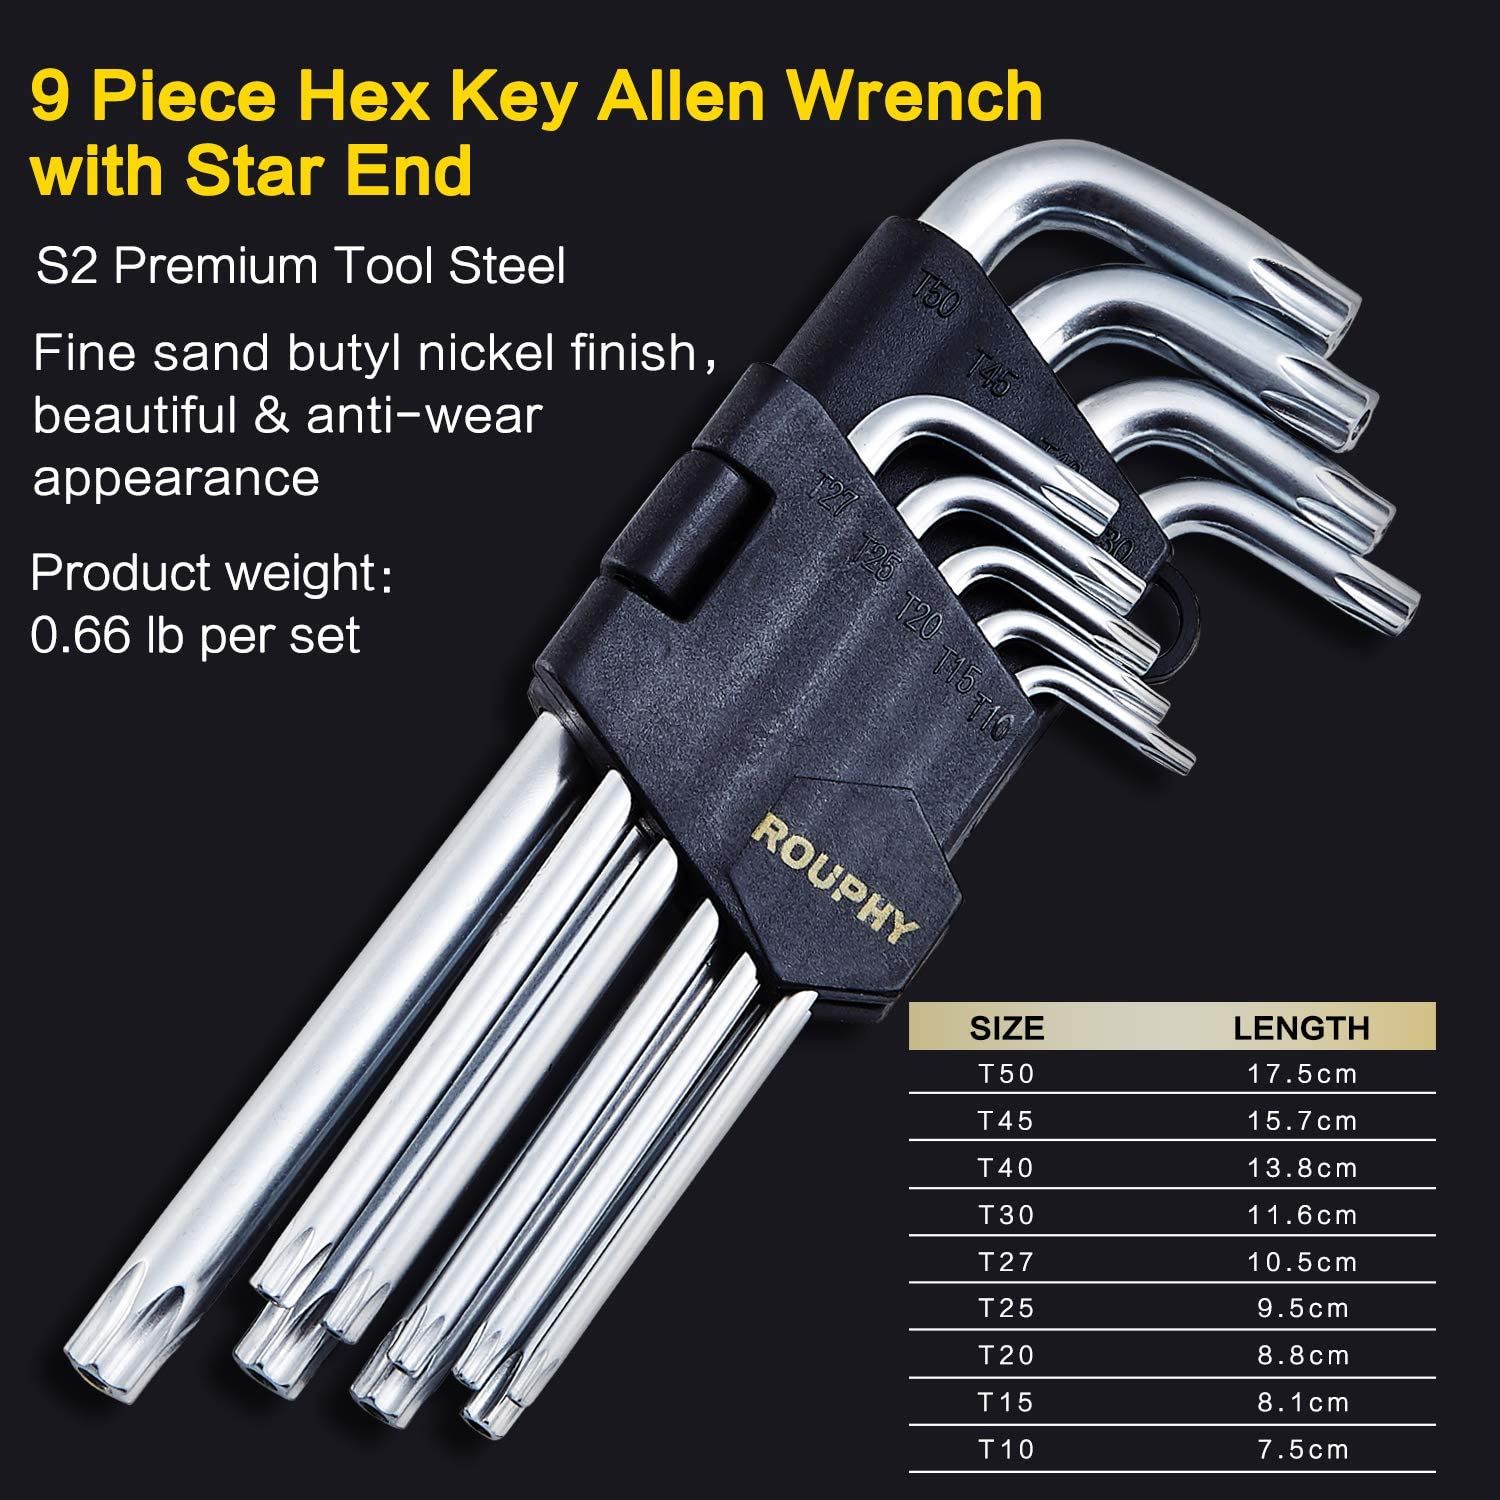 Inch//Metric Strength Increasing T-Handle Premium S2 Tool Steel 35-Piece HRC60/±2 ROUPHY Industrial Grade Long Arm Hex Key Allen Wrench Set with Ball /& Star End